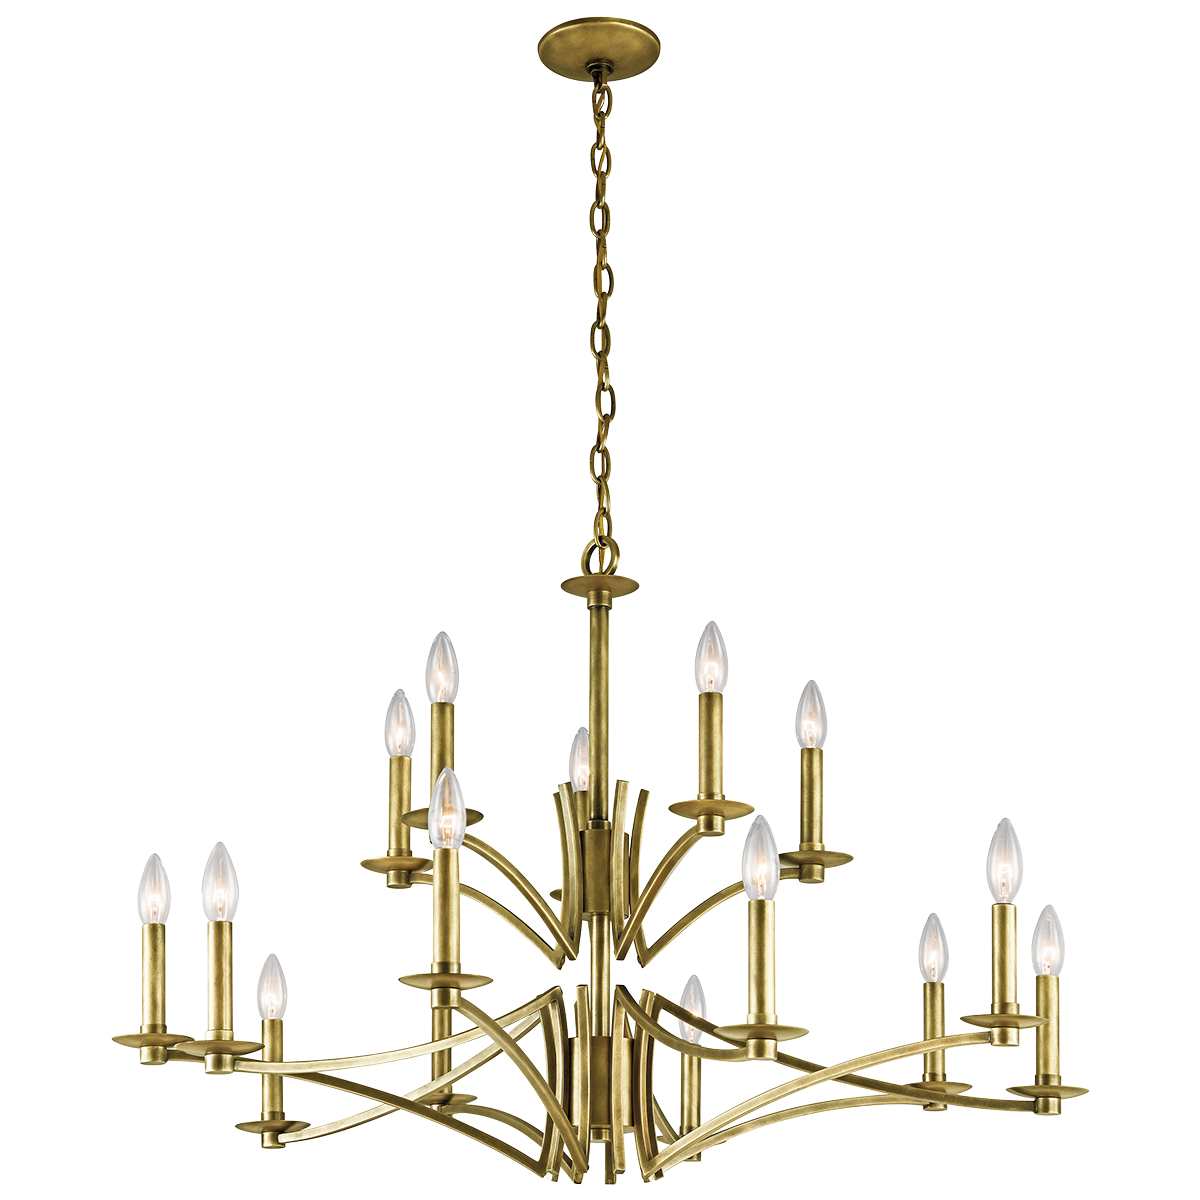 Grayson 15 Light Chandelier In Natural Brass Nbr Candle Style